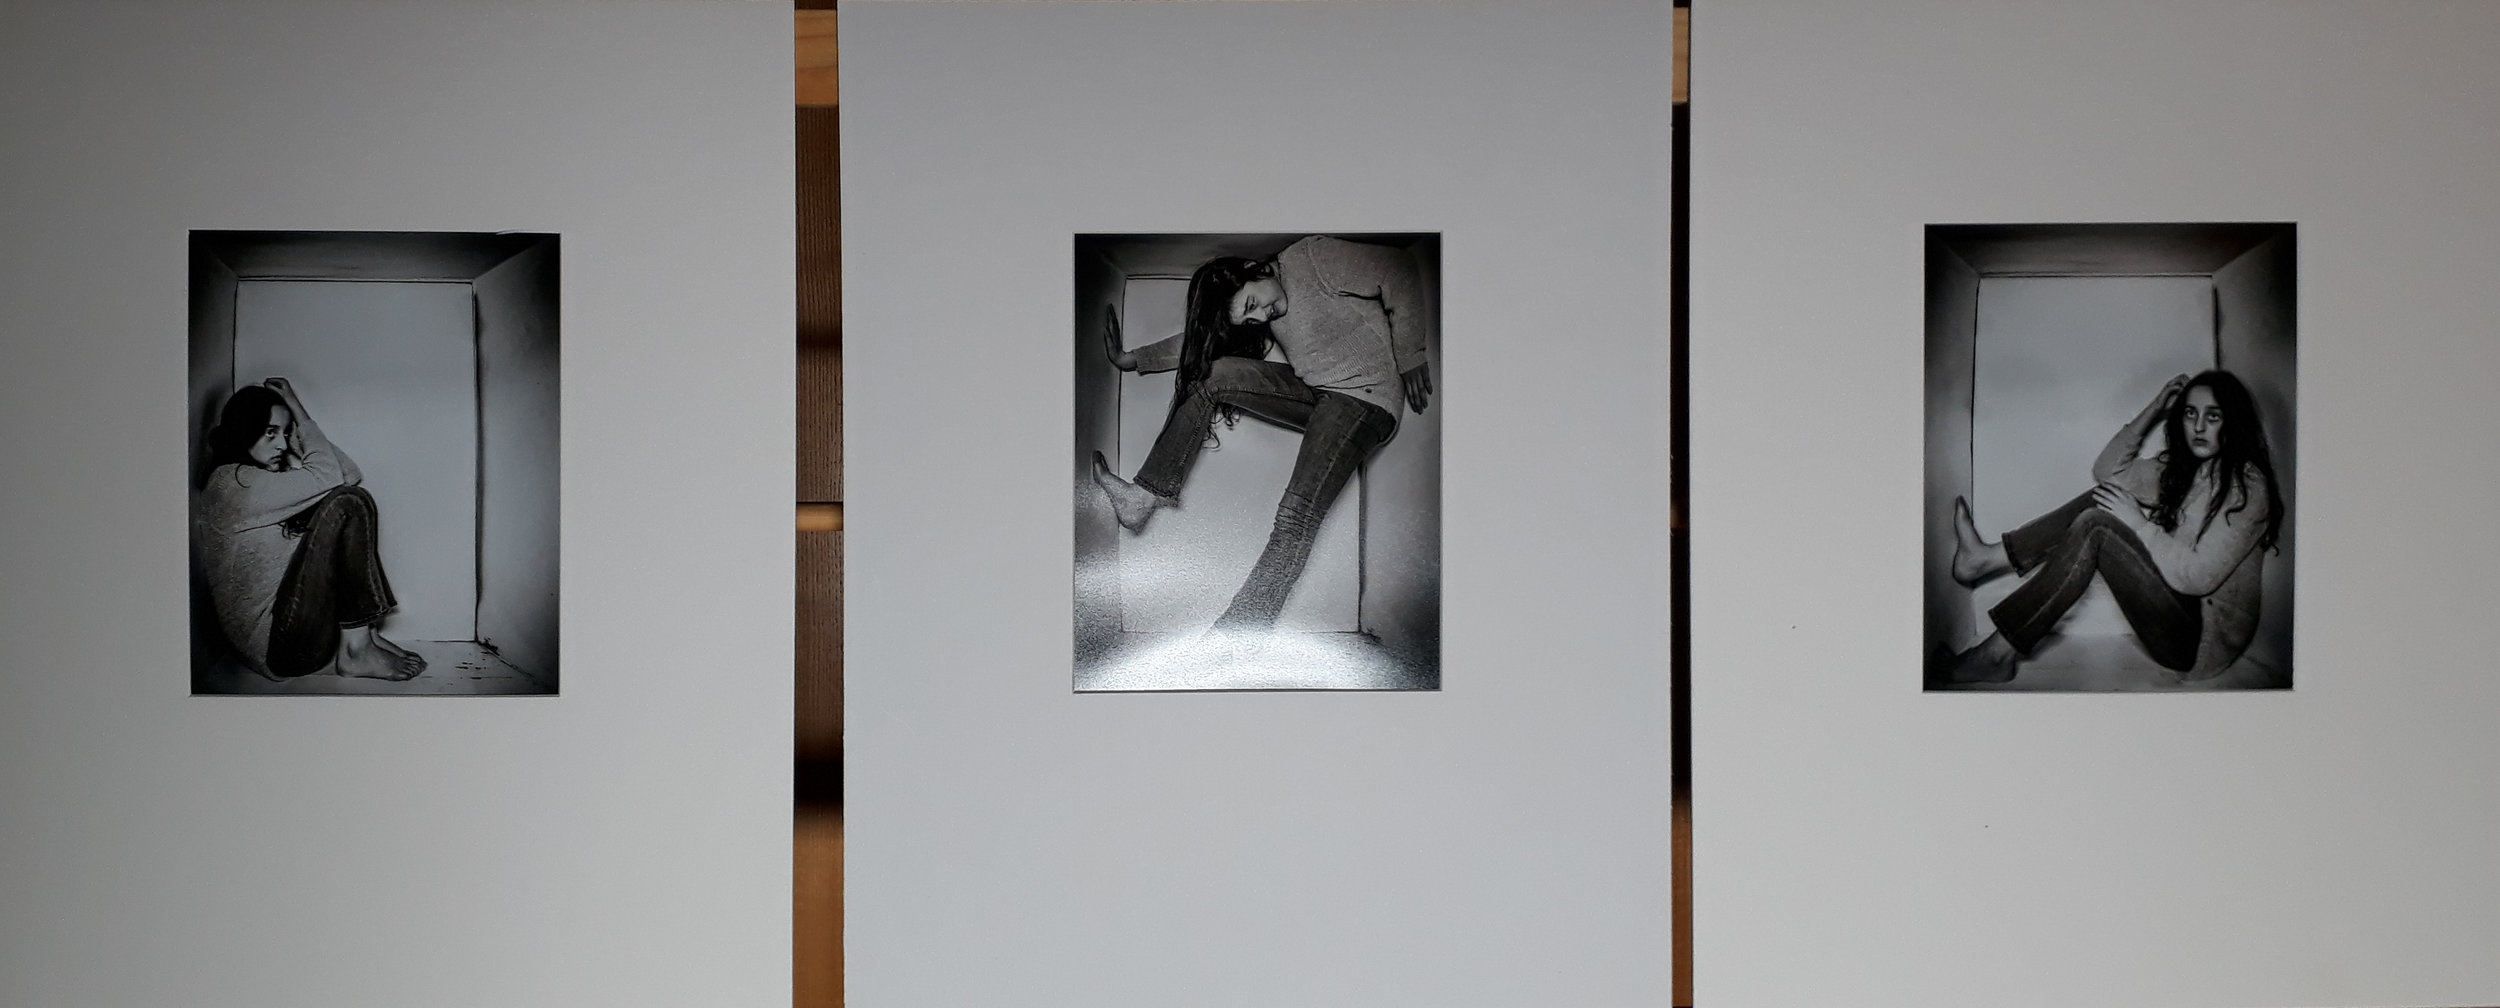 Commended - Confined - Richard Squires